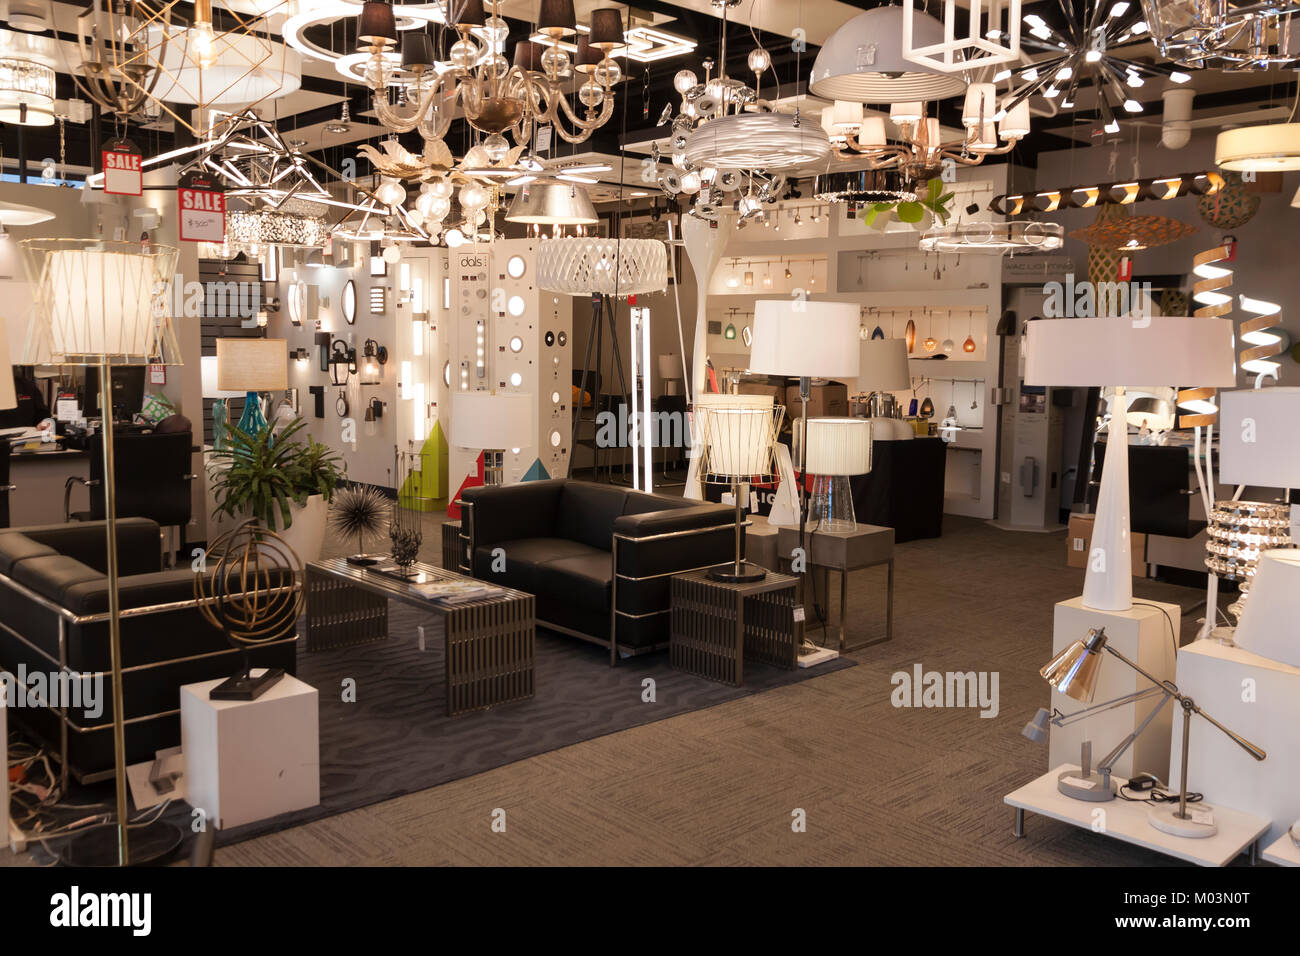 https www alamy com stock photo modern lighting and lamps on display in a retail store interior 172186024 html